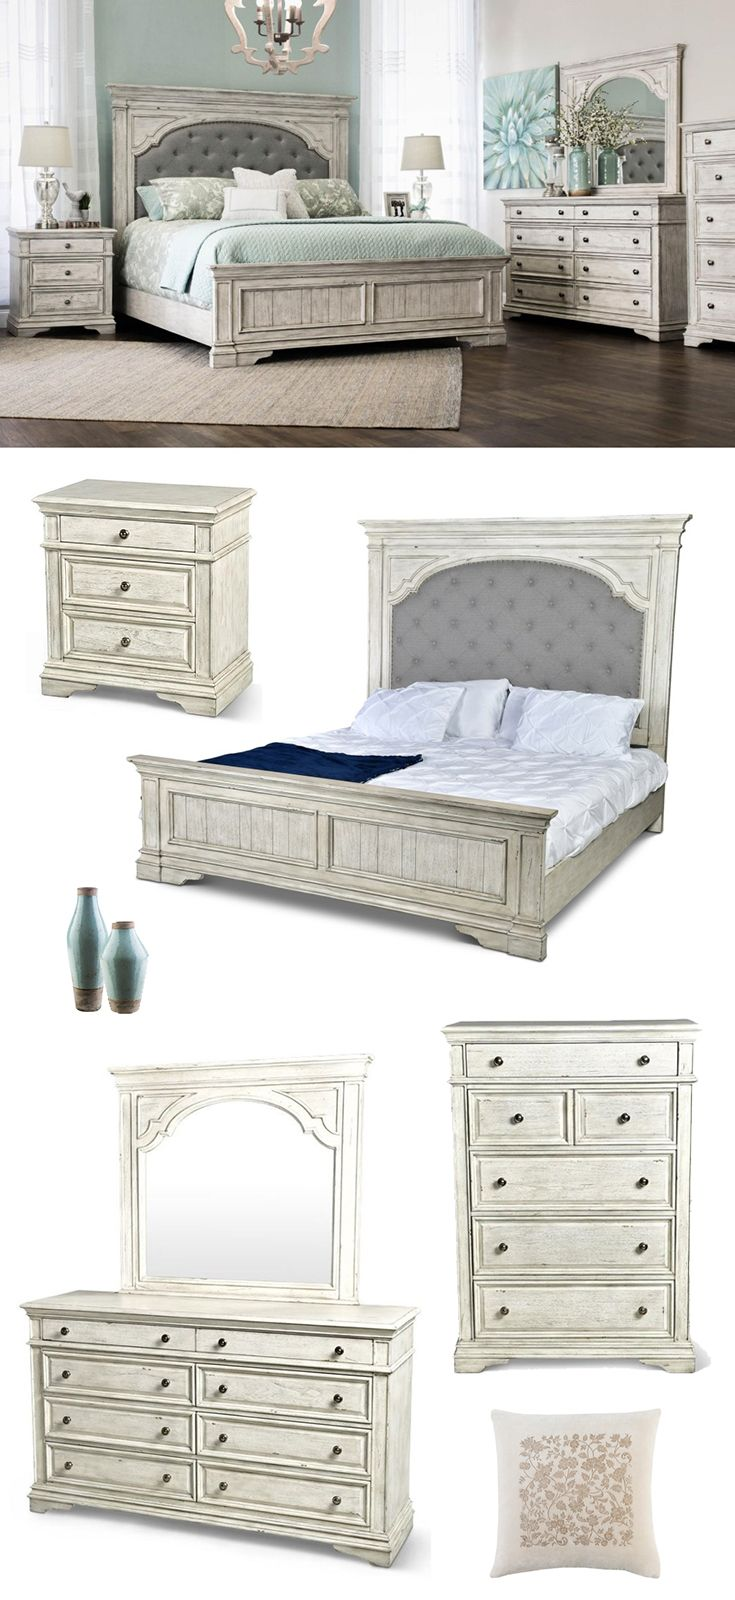 The Highland Park Collection Draws On Classic Detailing And Shapes To Help You Create A Bedroom Retreat T Classic Bedroom Furniture Furniture Bedroom Furniture